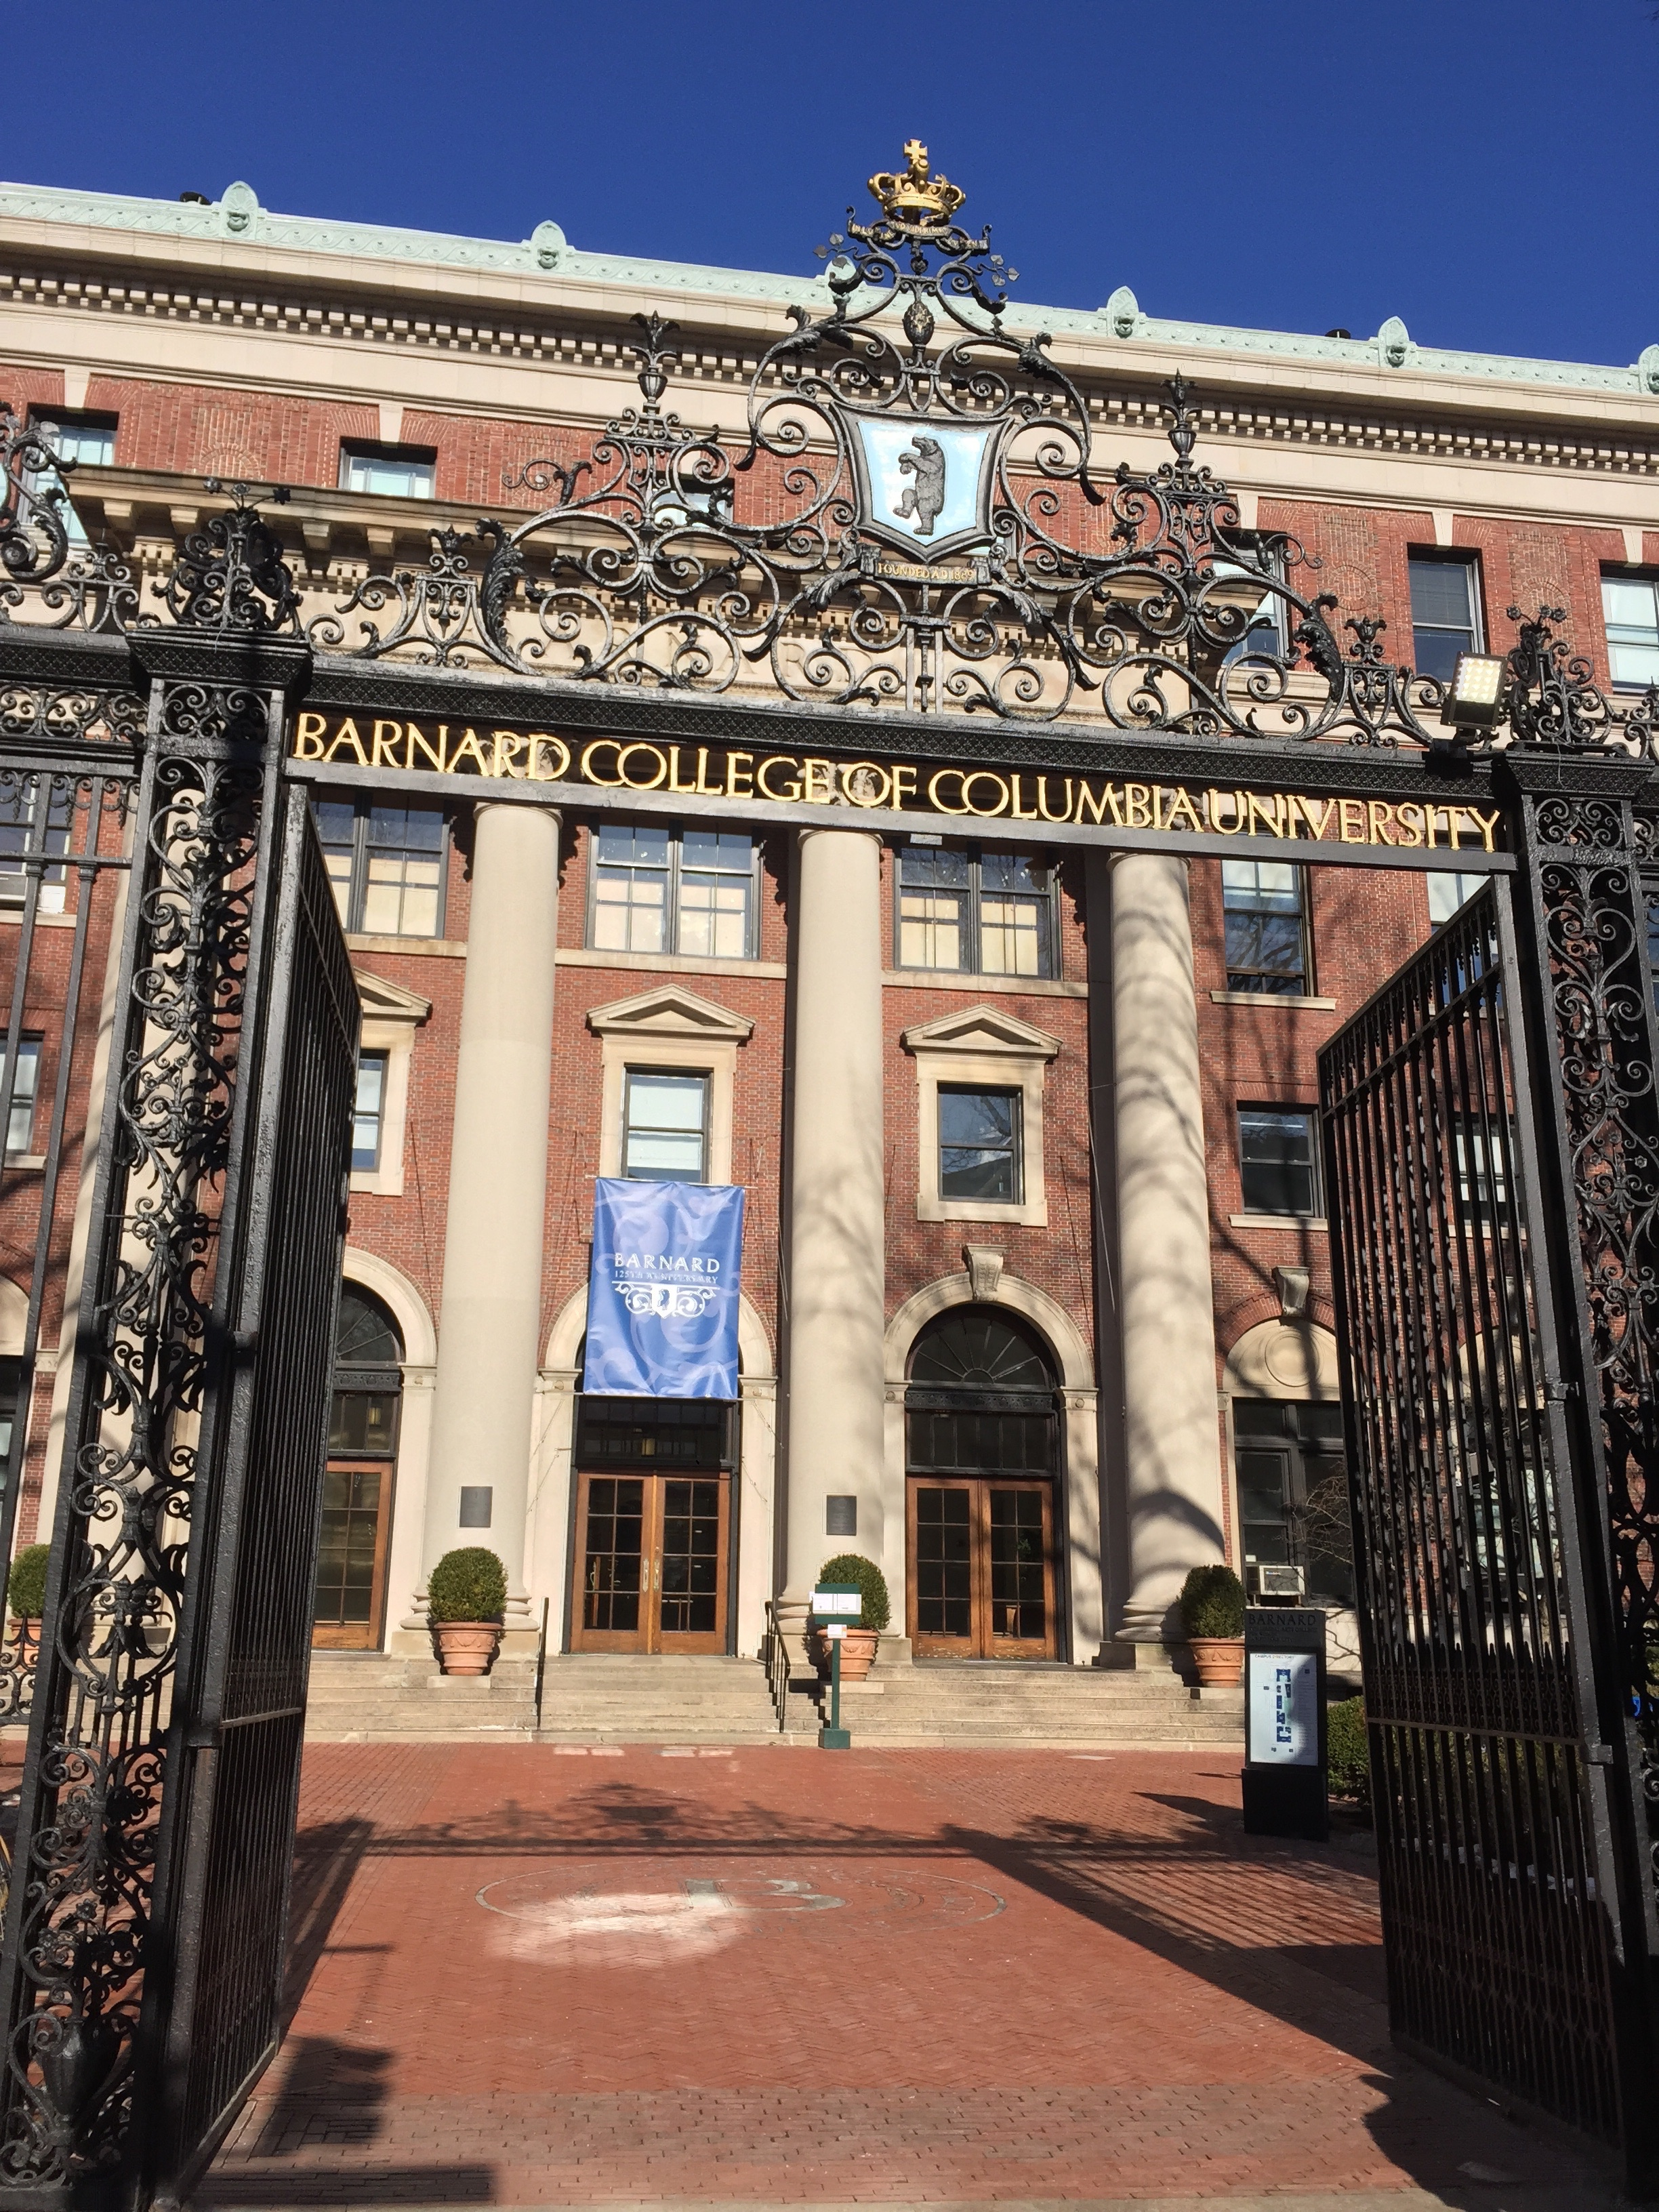 "Barnard College front gates engraved in the head covering reads: ""Barnard College of Columbia University."""